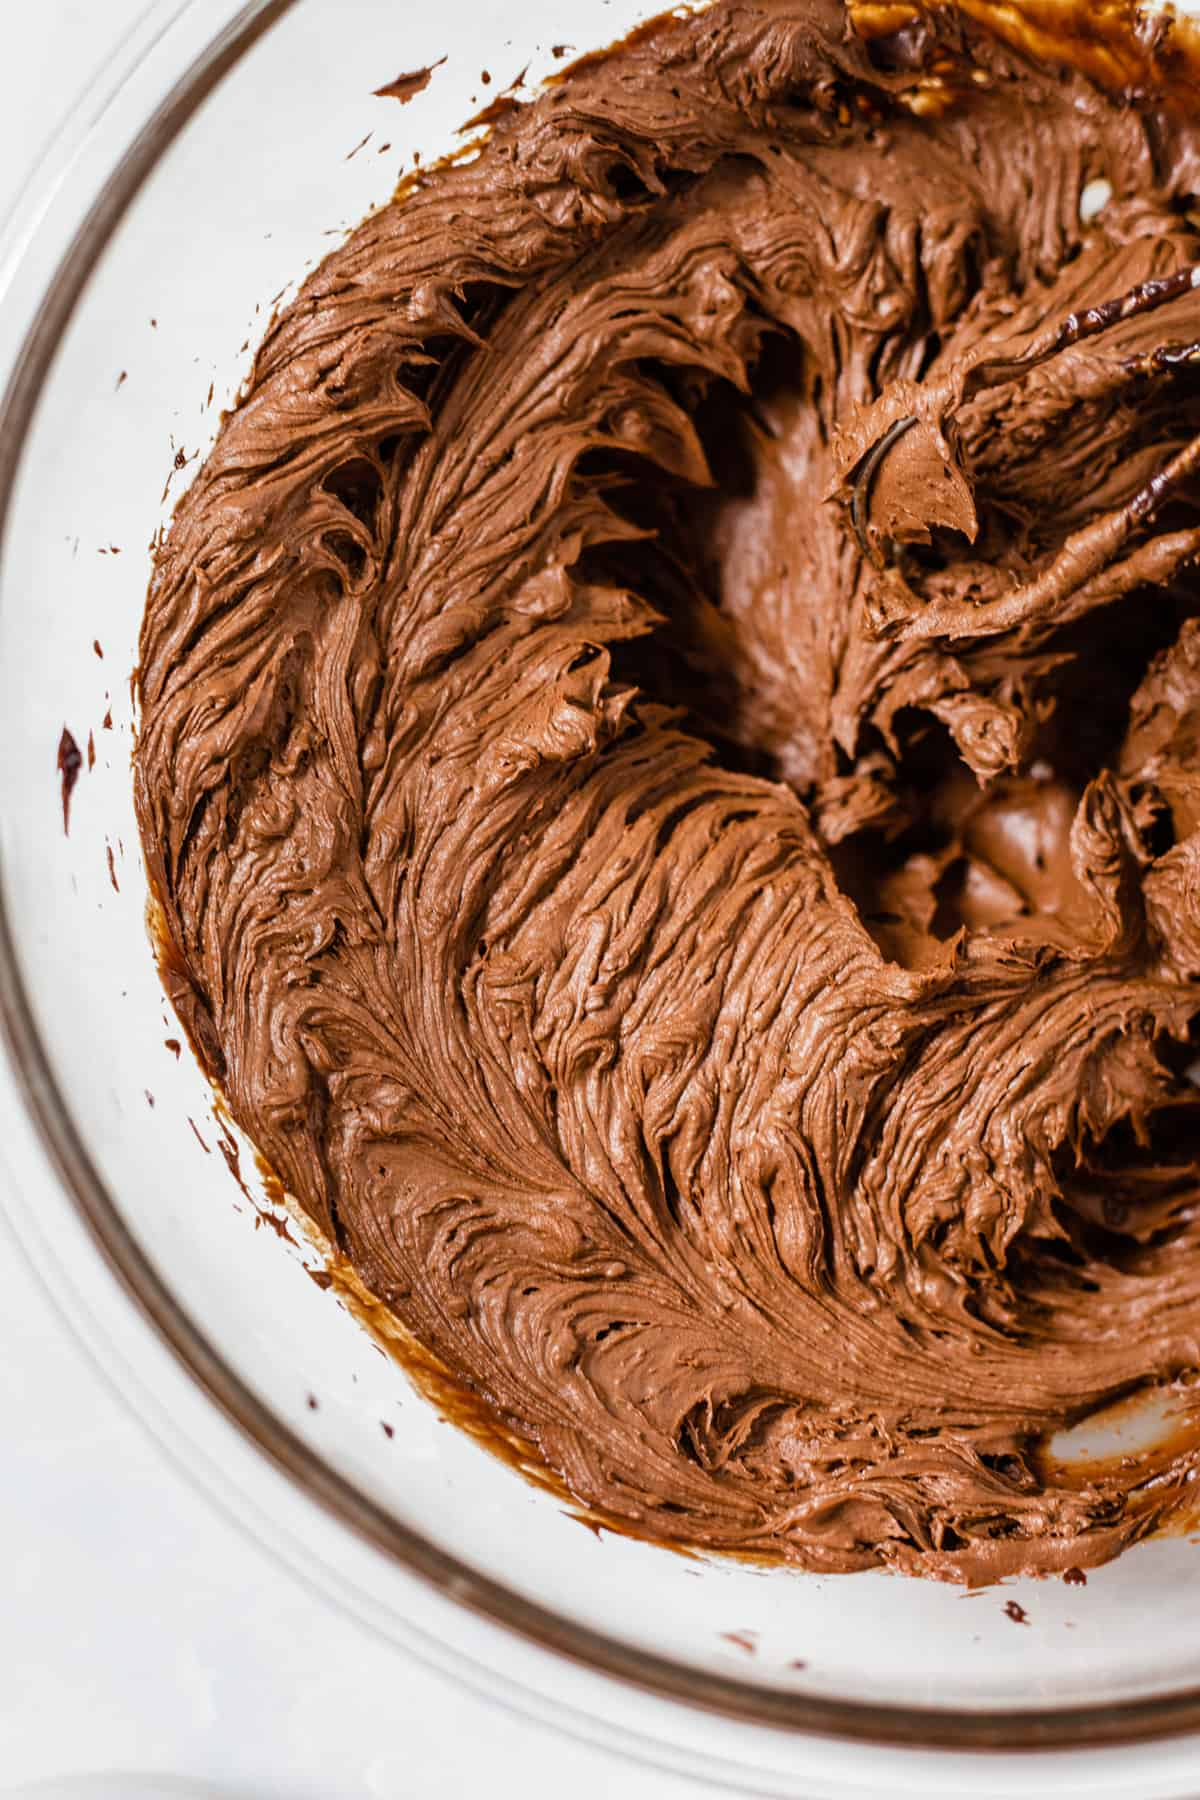 whipped chocolate ganache in a glass bowl